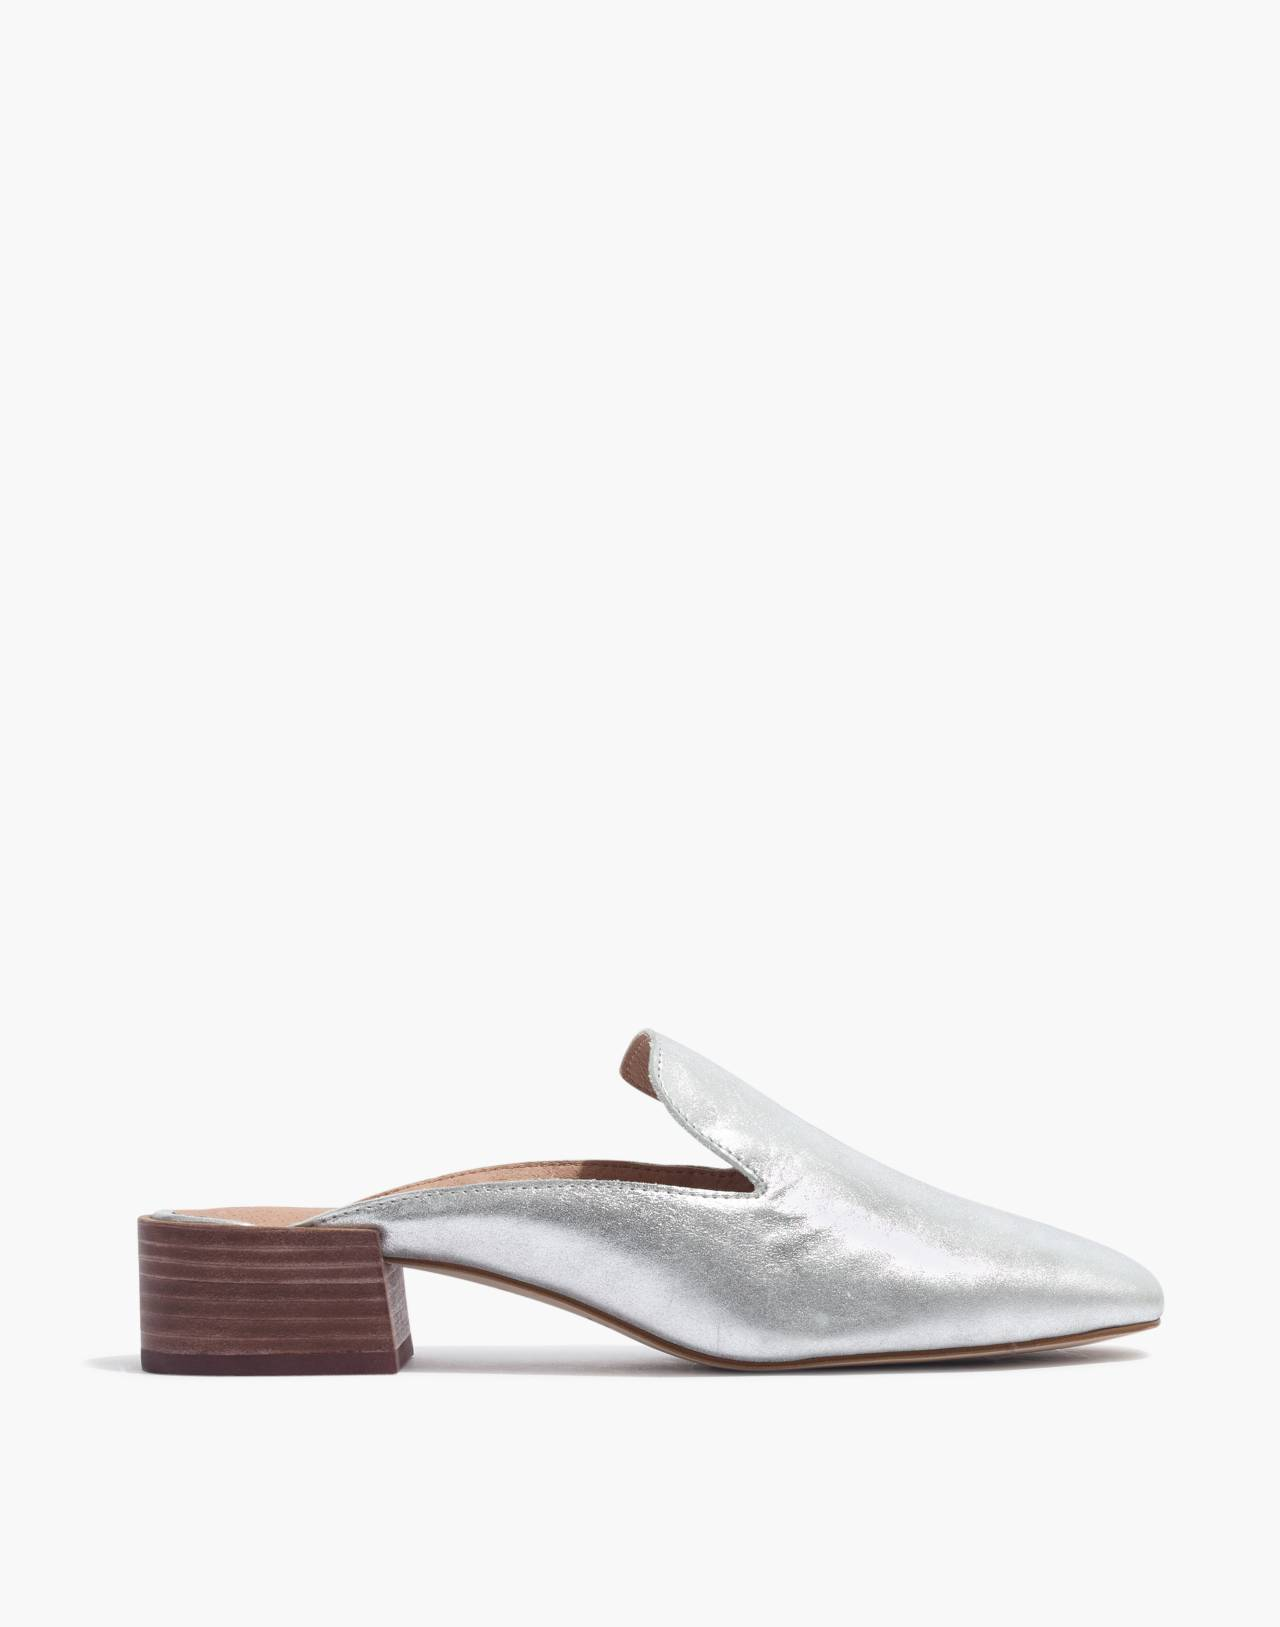 The Willa Loafer Mule in Metallic in silver image 2